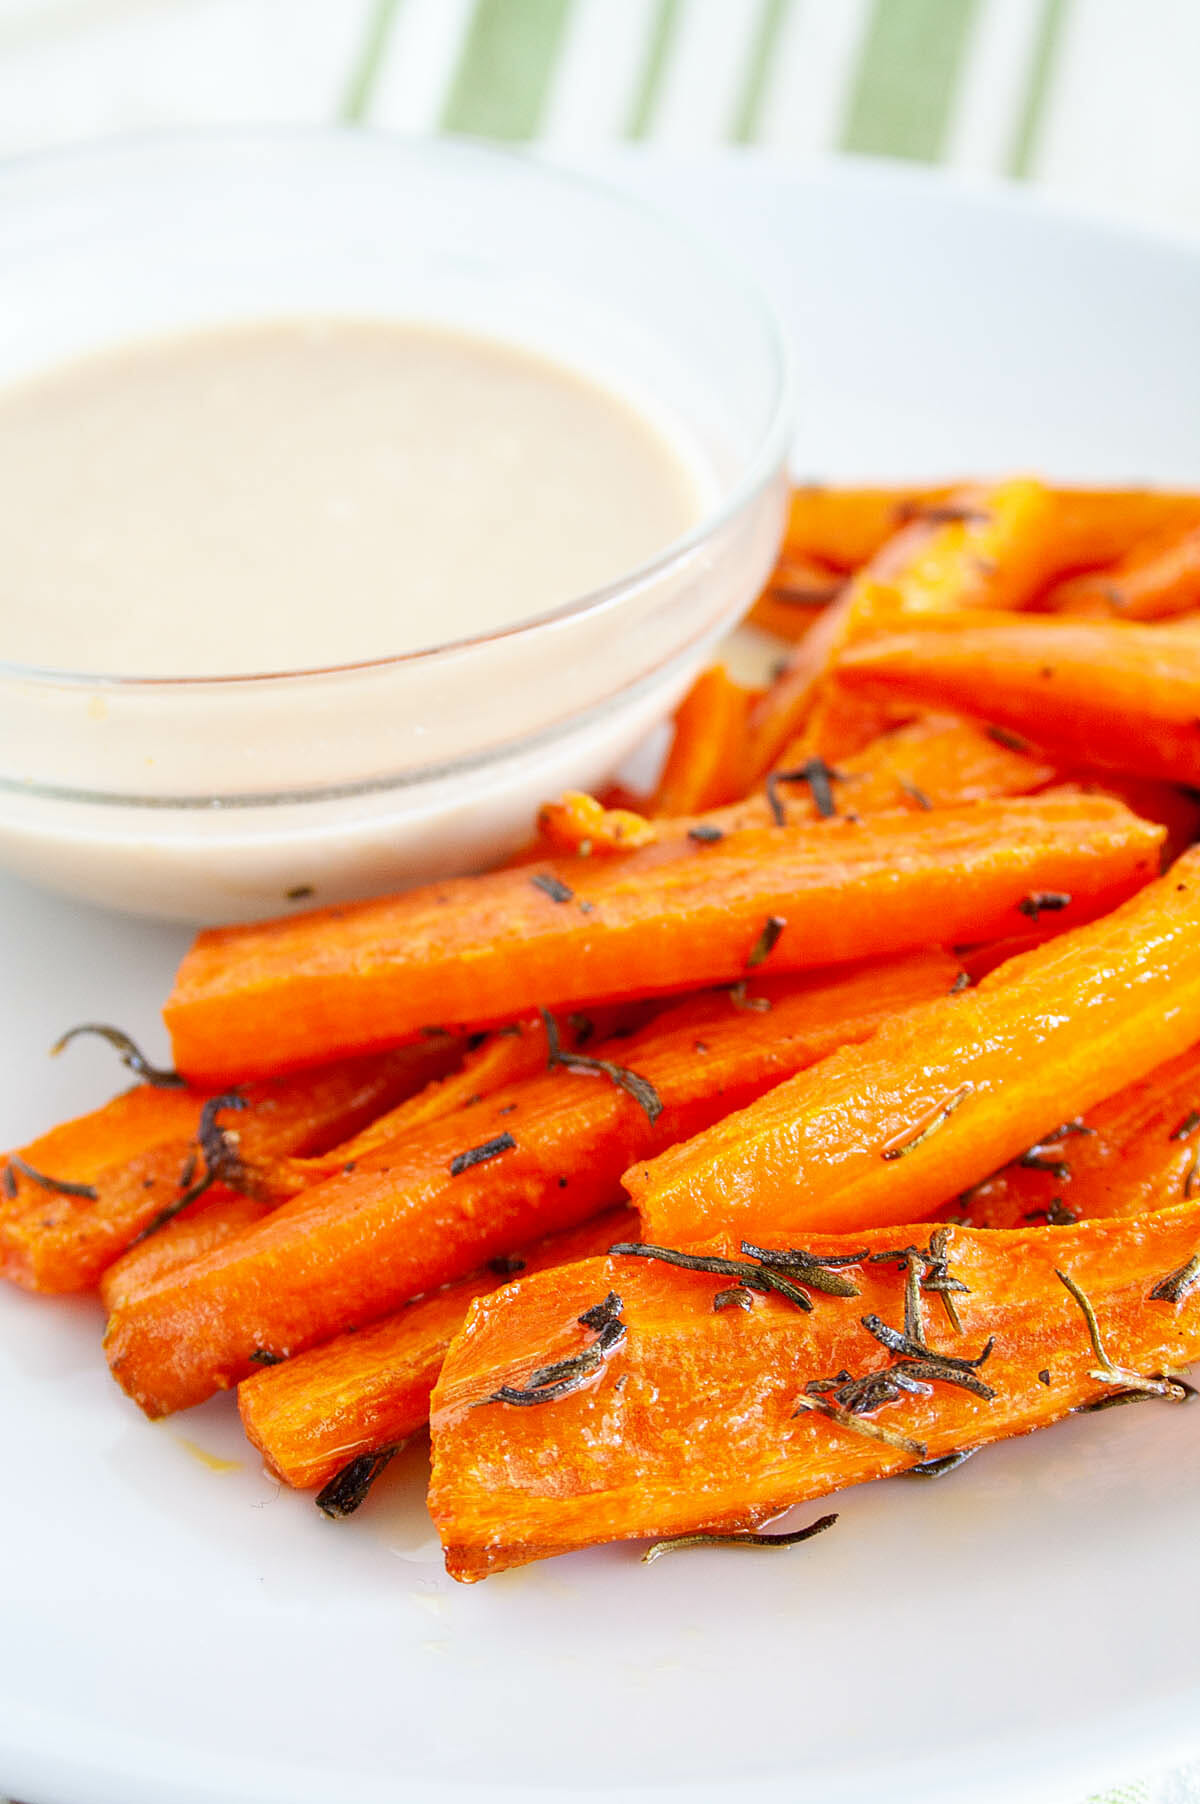 Baked Carrot Fries with Rosemary close up.